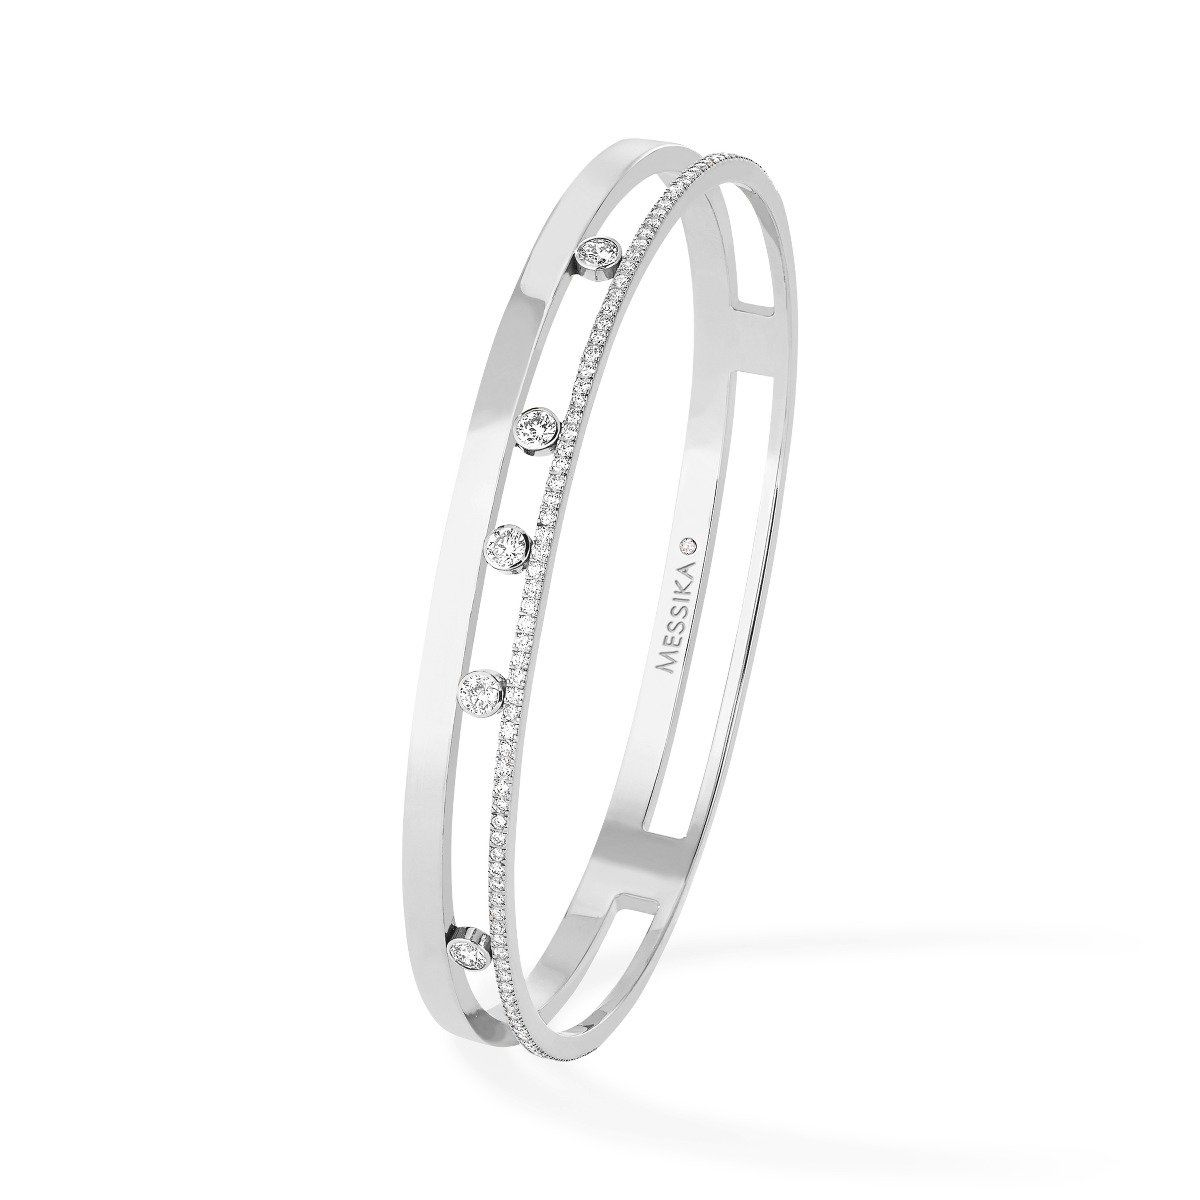 Move romane bangle bracelet  white gold